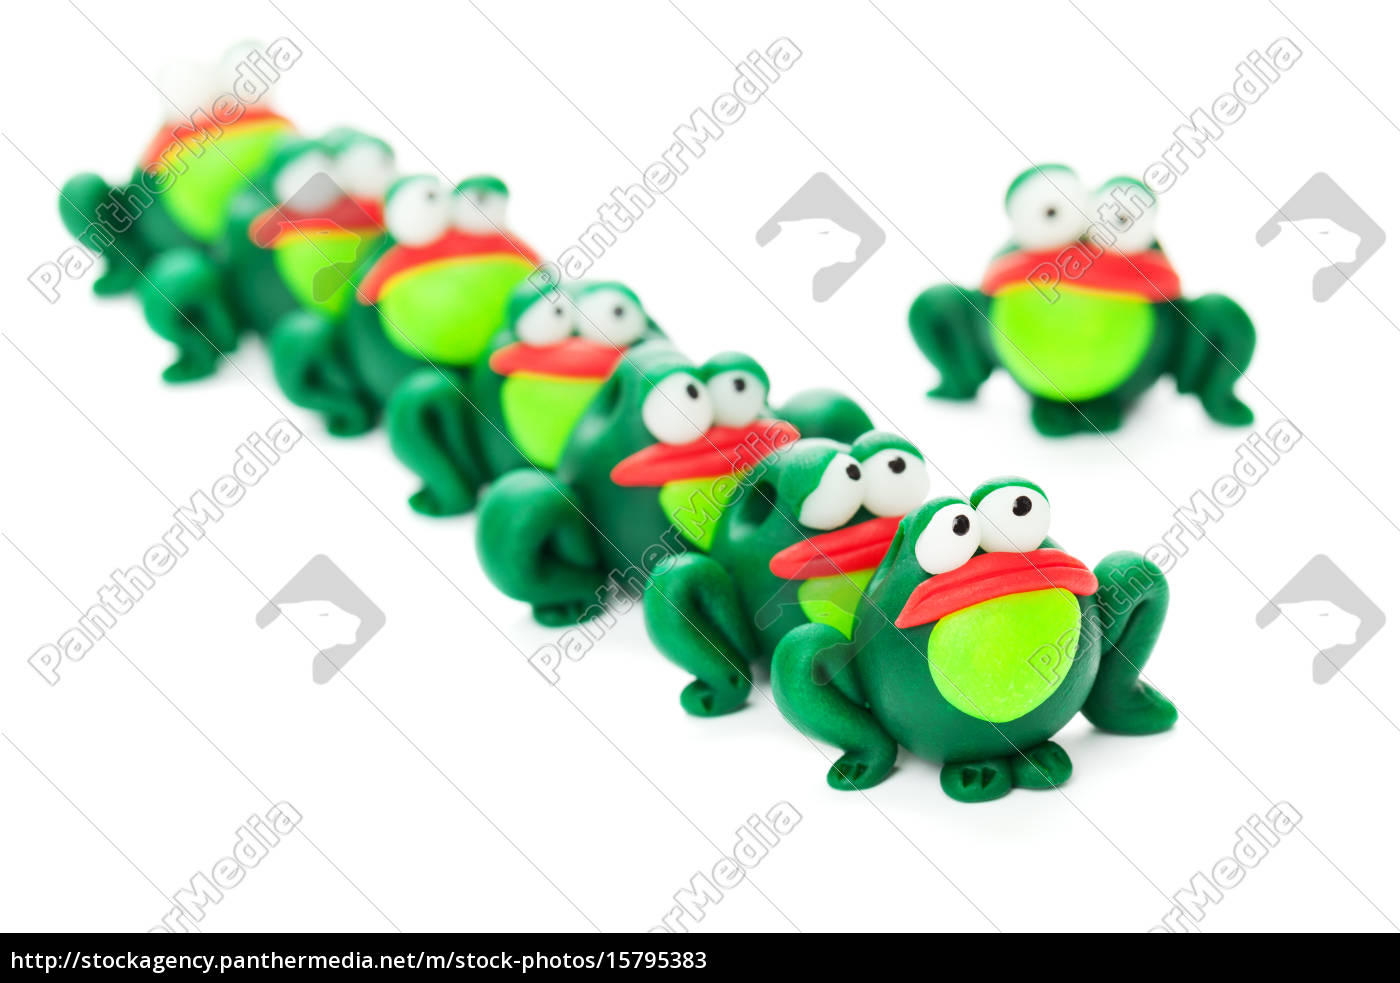 frogs - 15795383